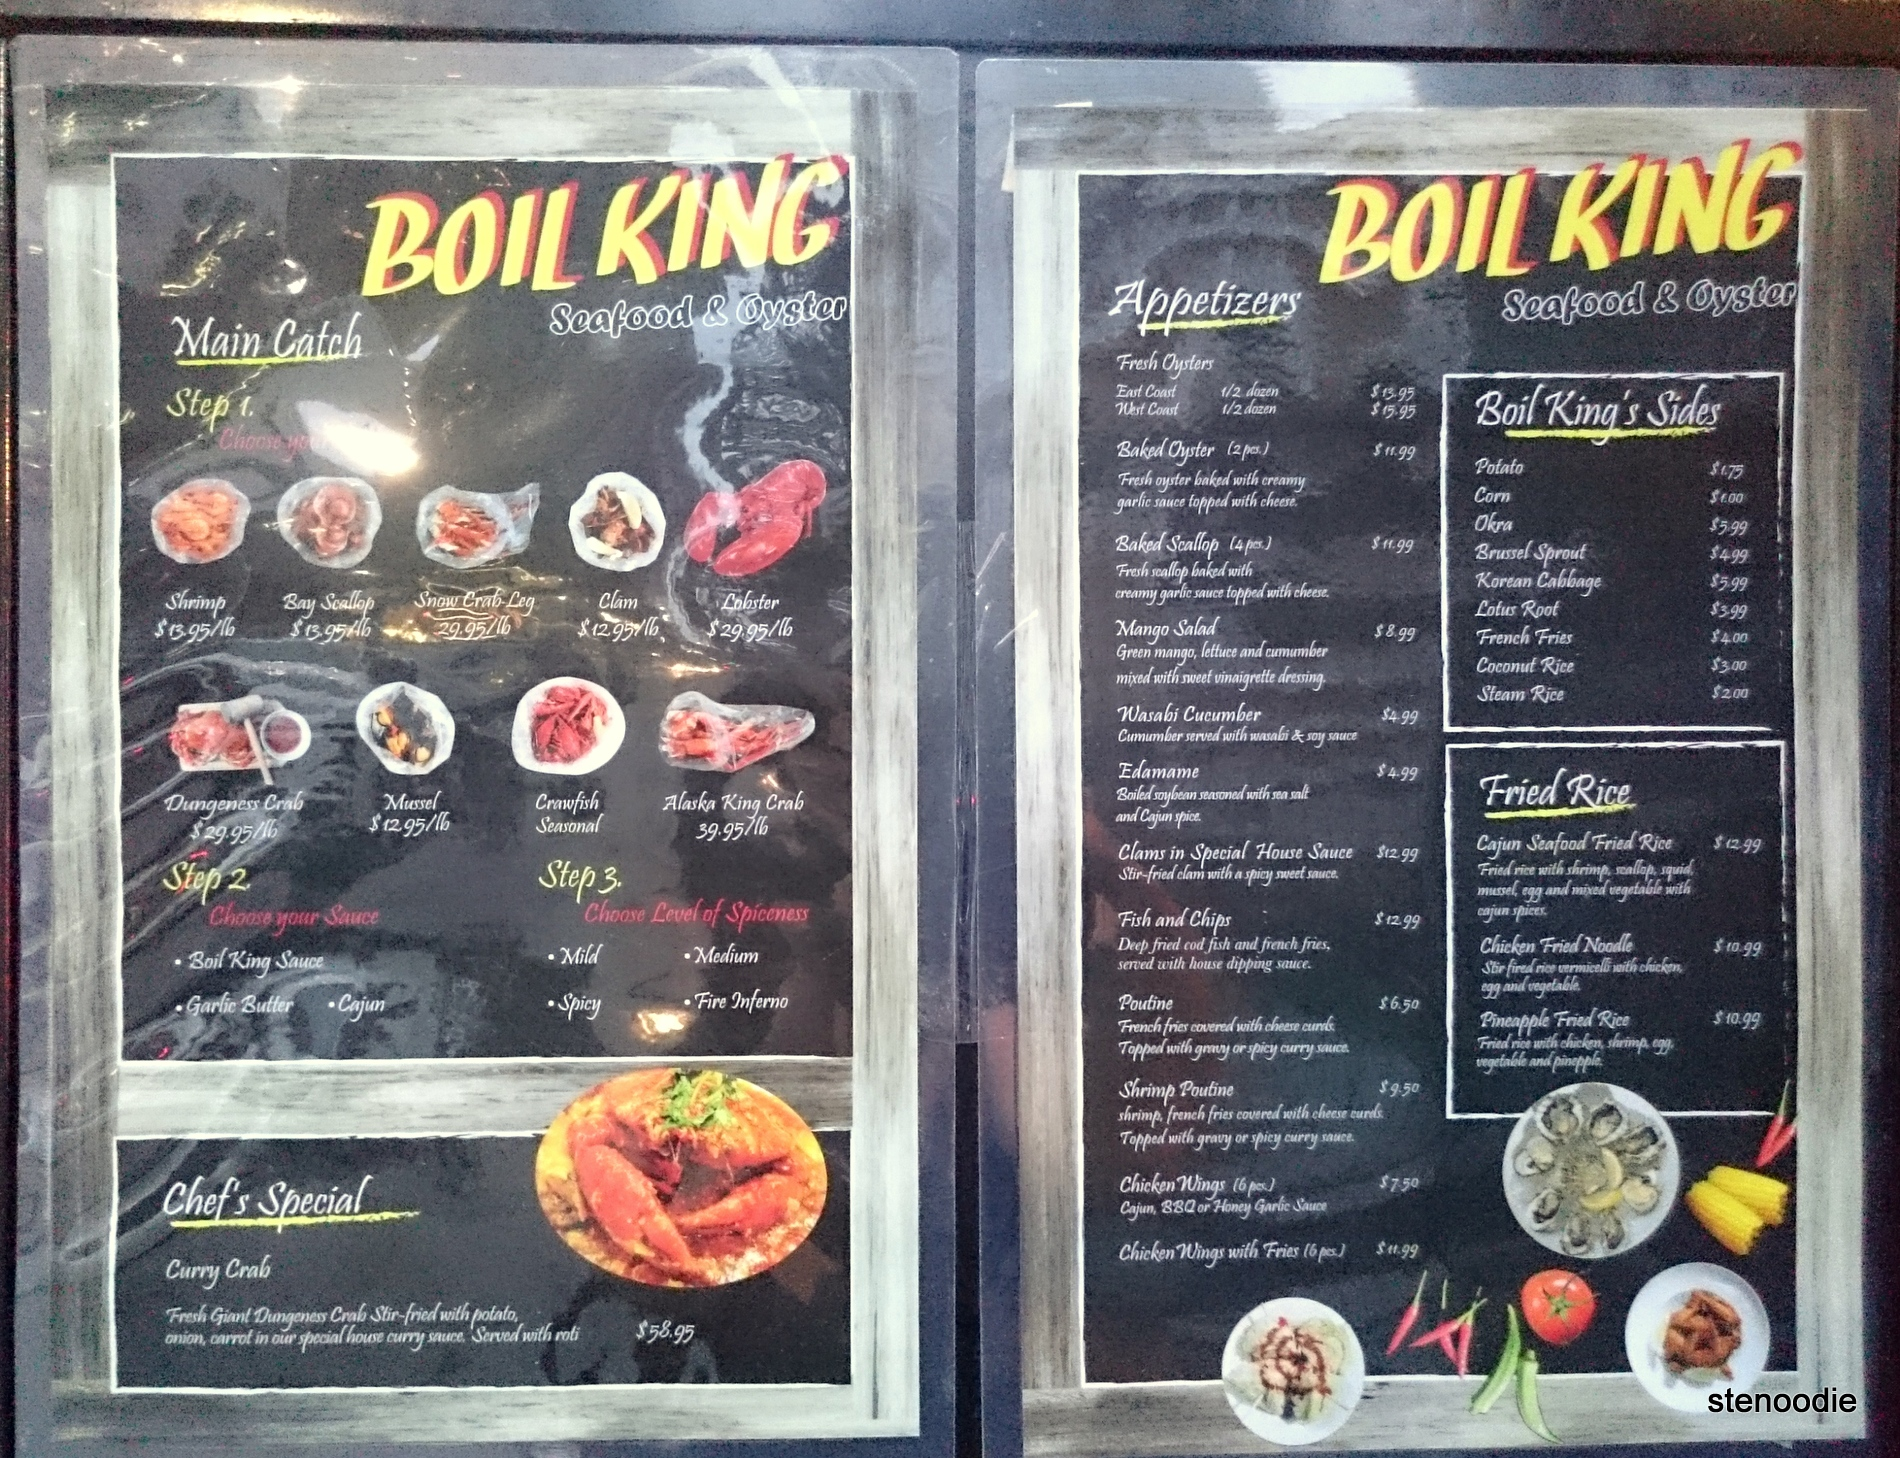 Boil King Full Menu and prices